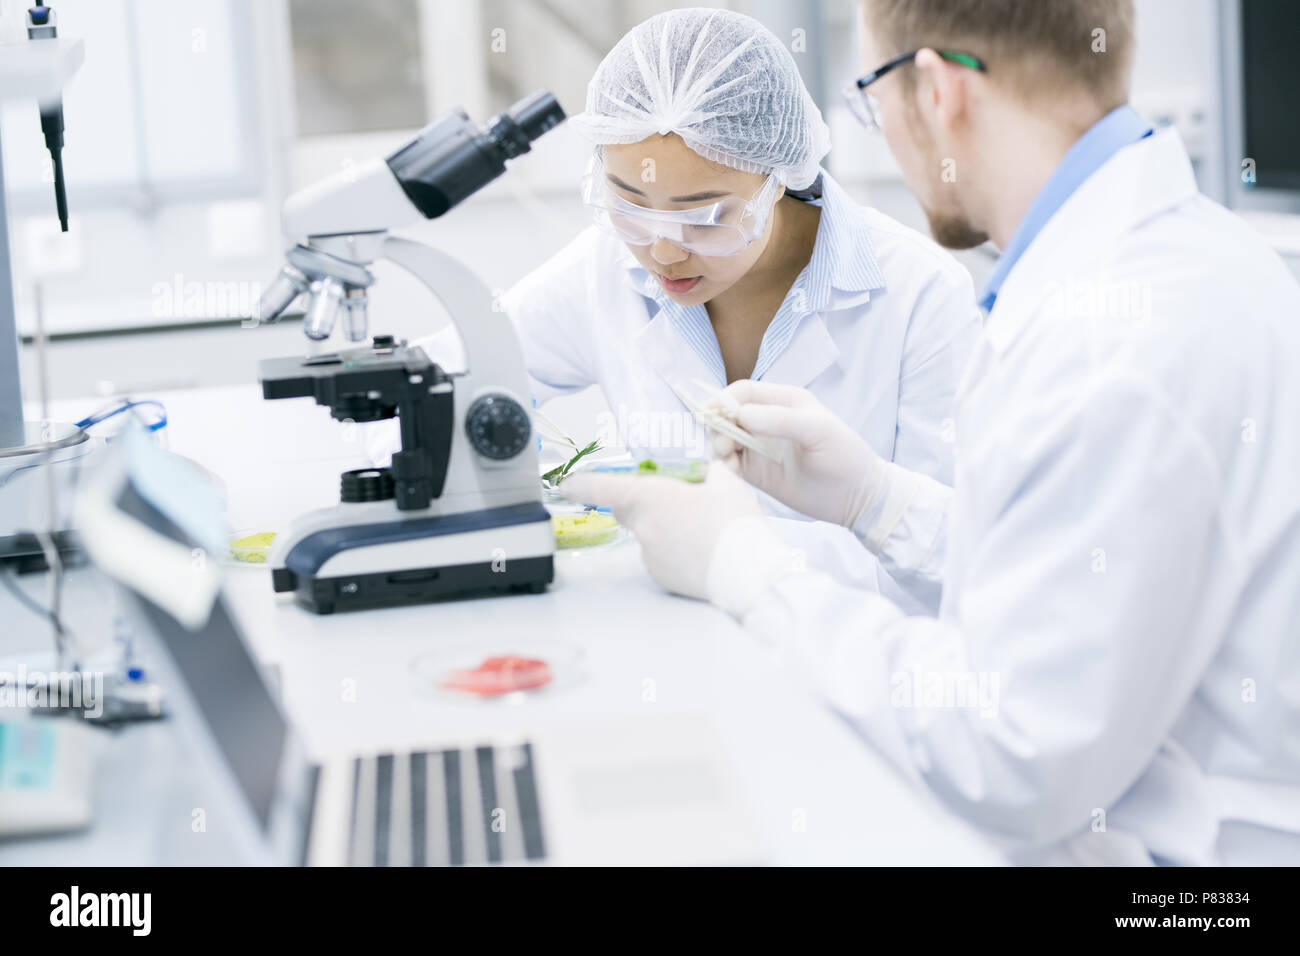 Team of Scientists Working in Laboratory - Stock Image